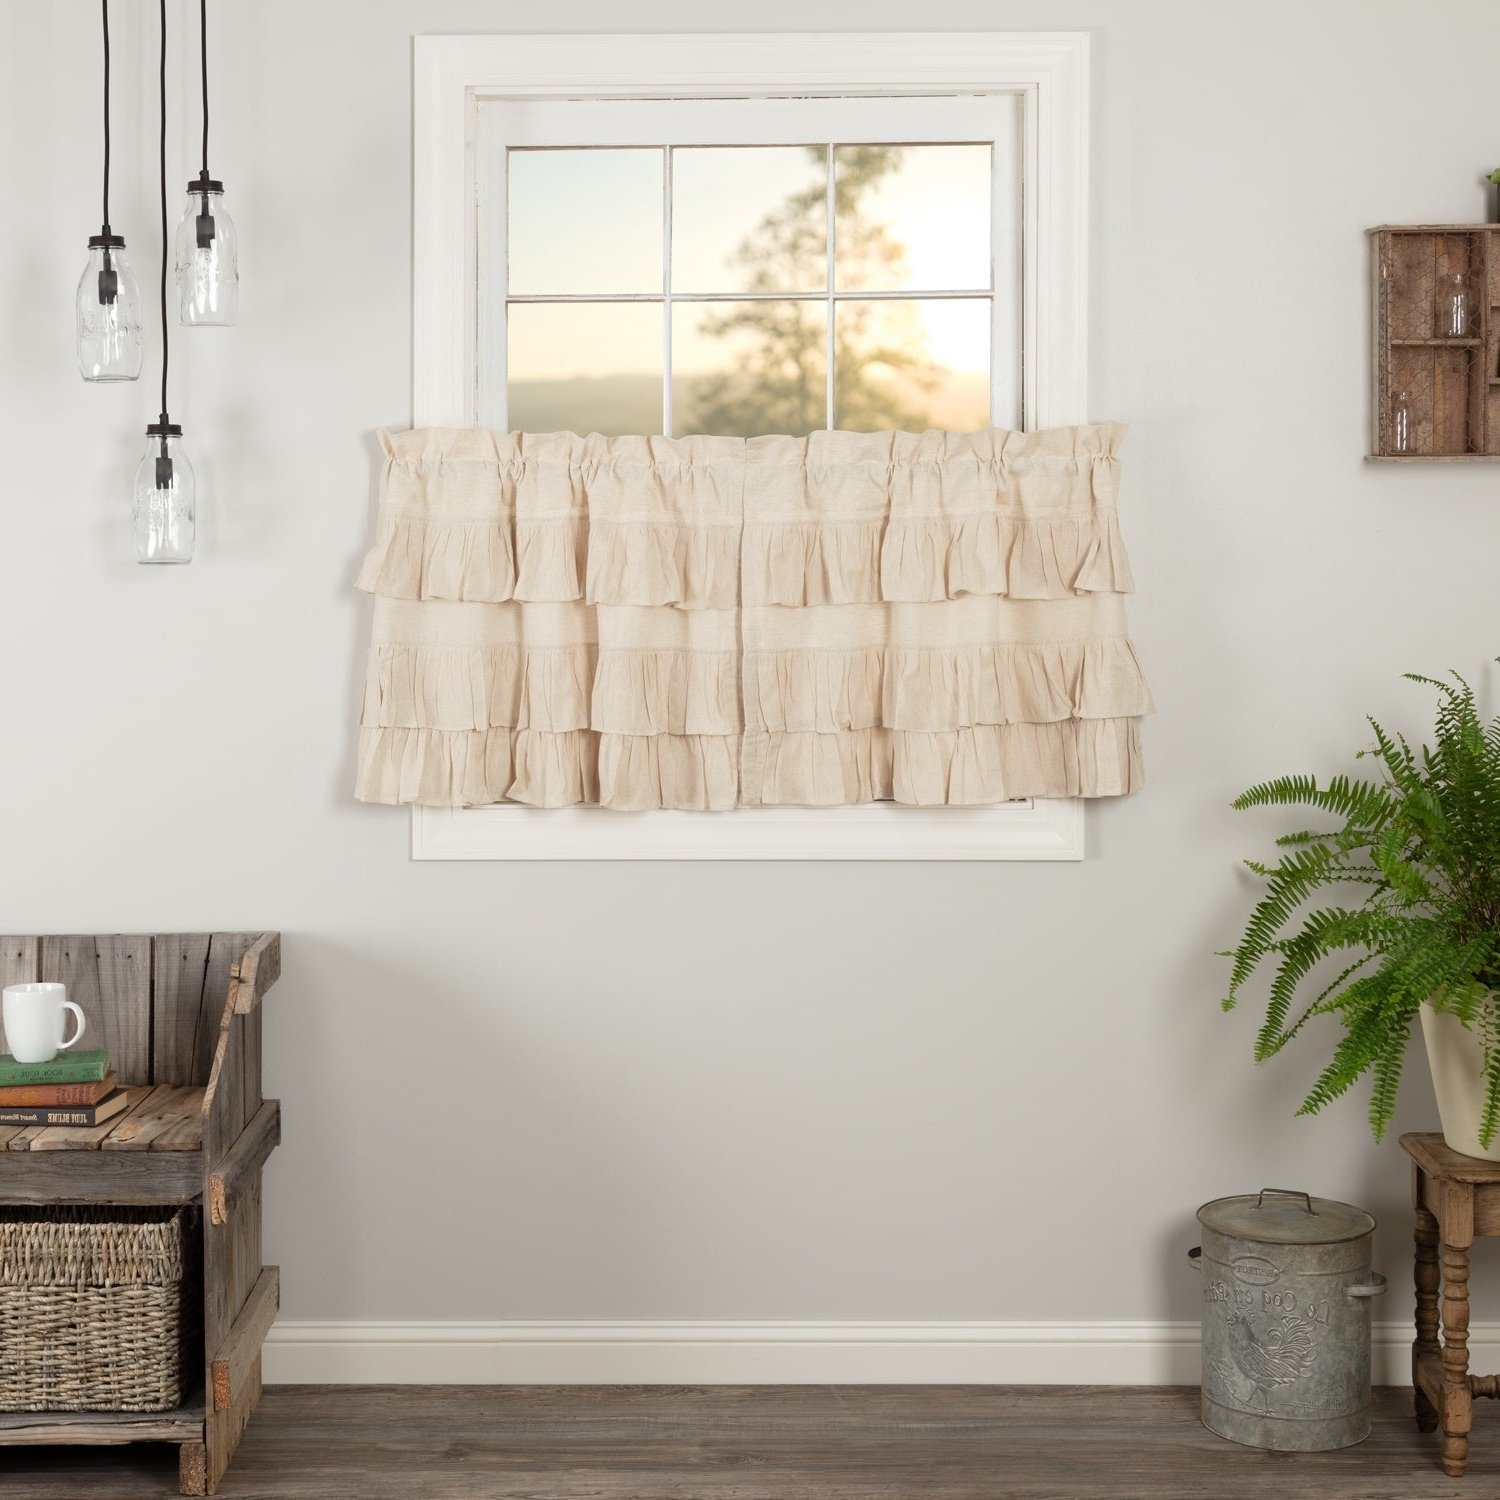 Rod Pocket Cotton Solid Color Ruched Ruffle Kitchen Curtains In Preferred Farmhouse Kitchen Curtains Vhc Simple Life Flax Tier Pair Rod Pocket Cotton Linen Blend Solid Color Flax (View 6 of 20)